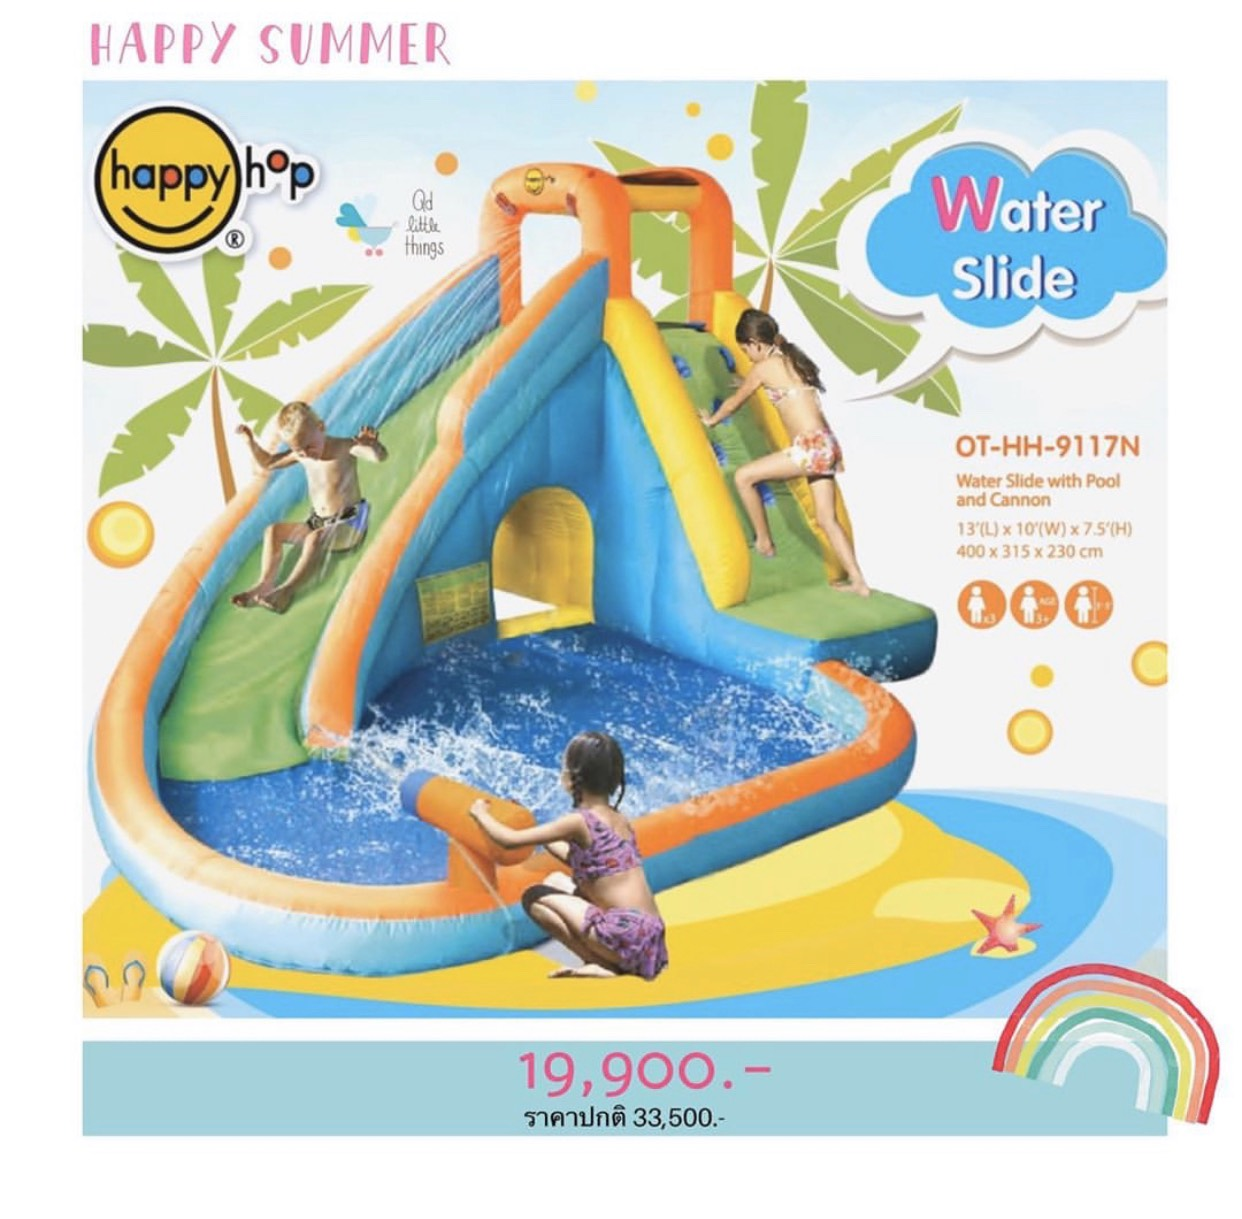 Happy Hop - Water Slide with Pool & Cannon